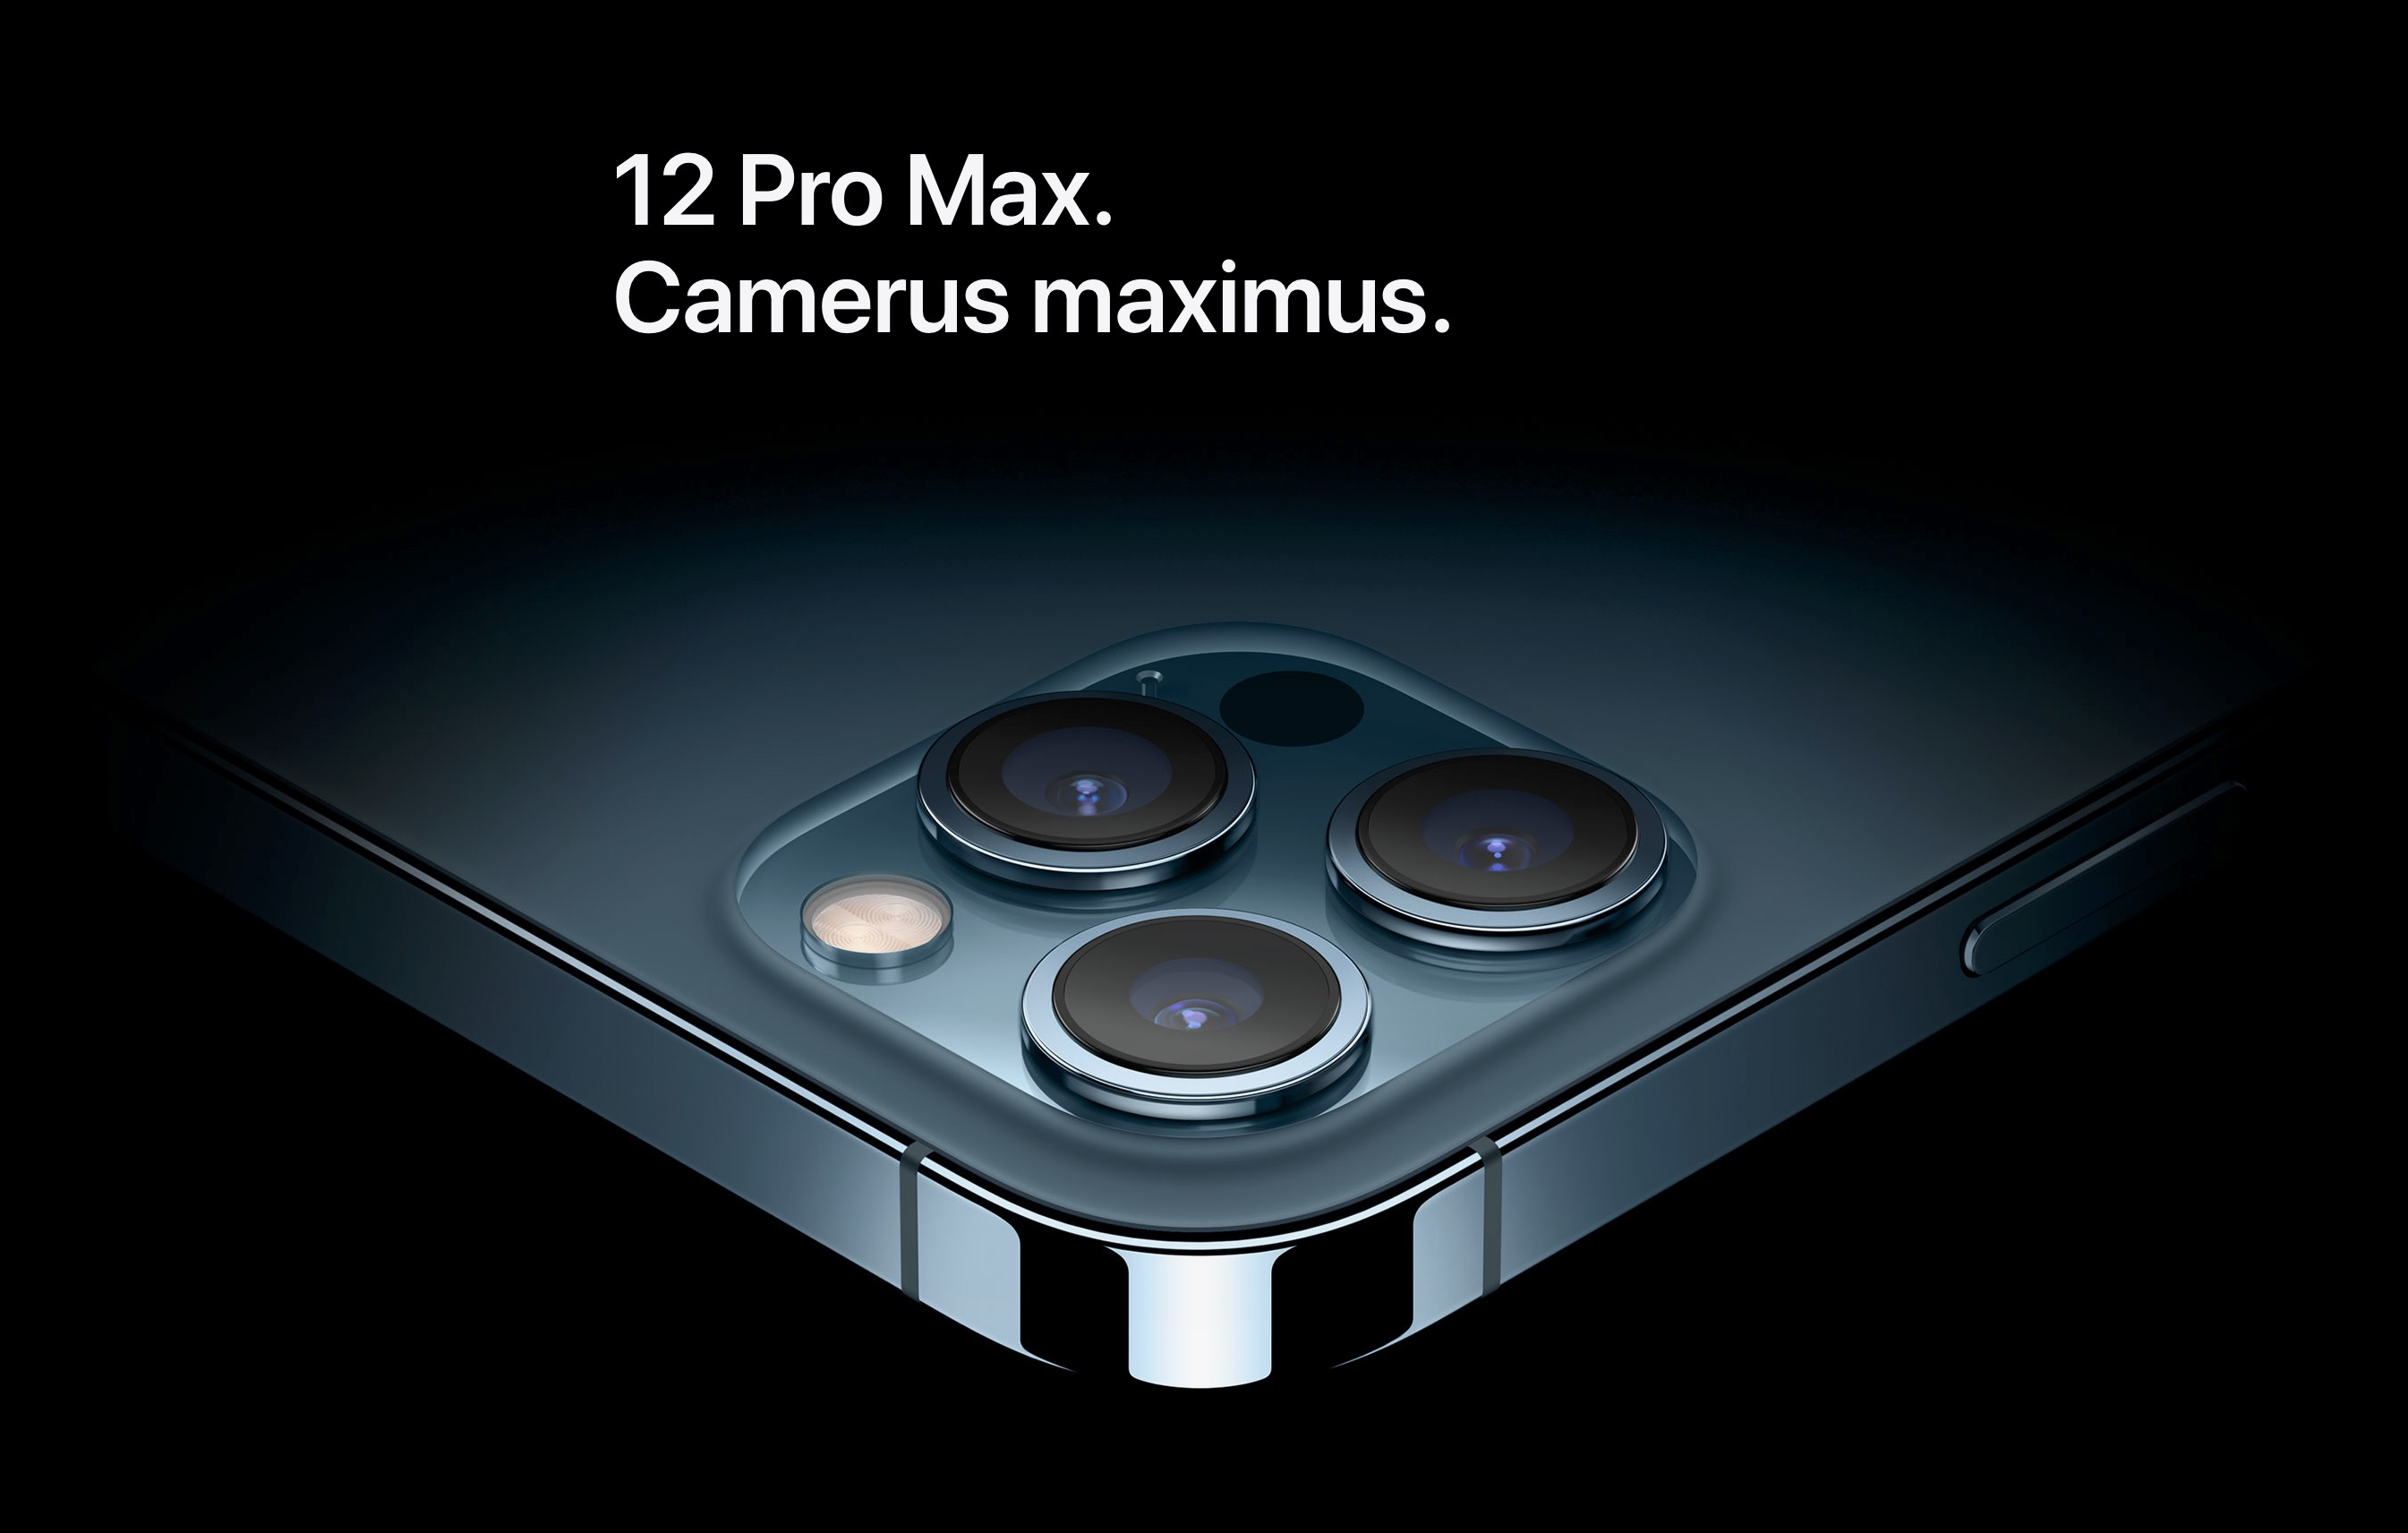 Iphone 12 Pro Max Review Round Up A Meta Review Of Apple S Largest Iphone 12 Model Digital Photography Review